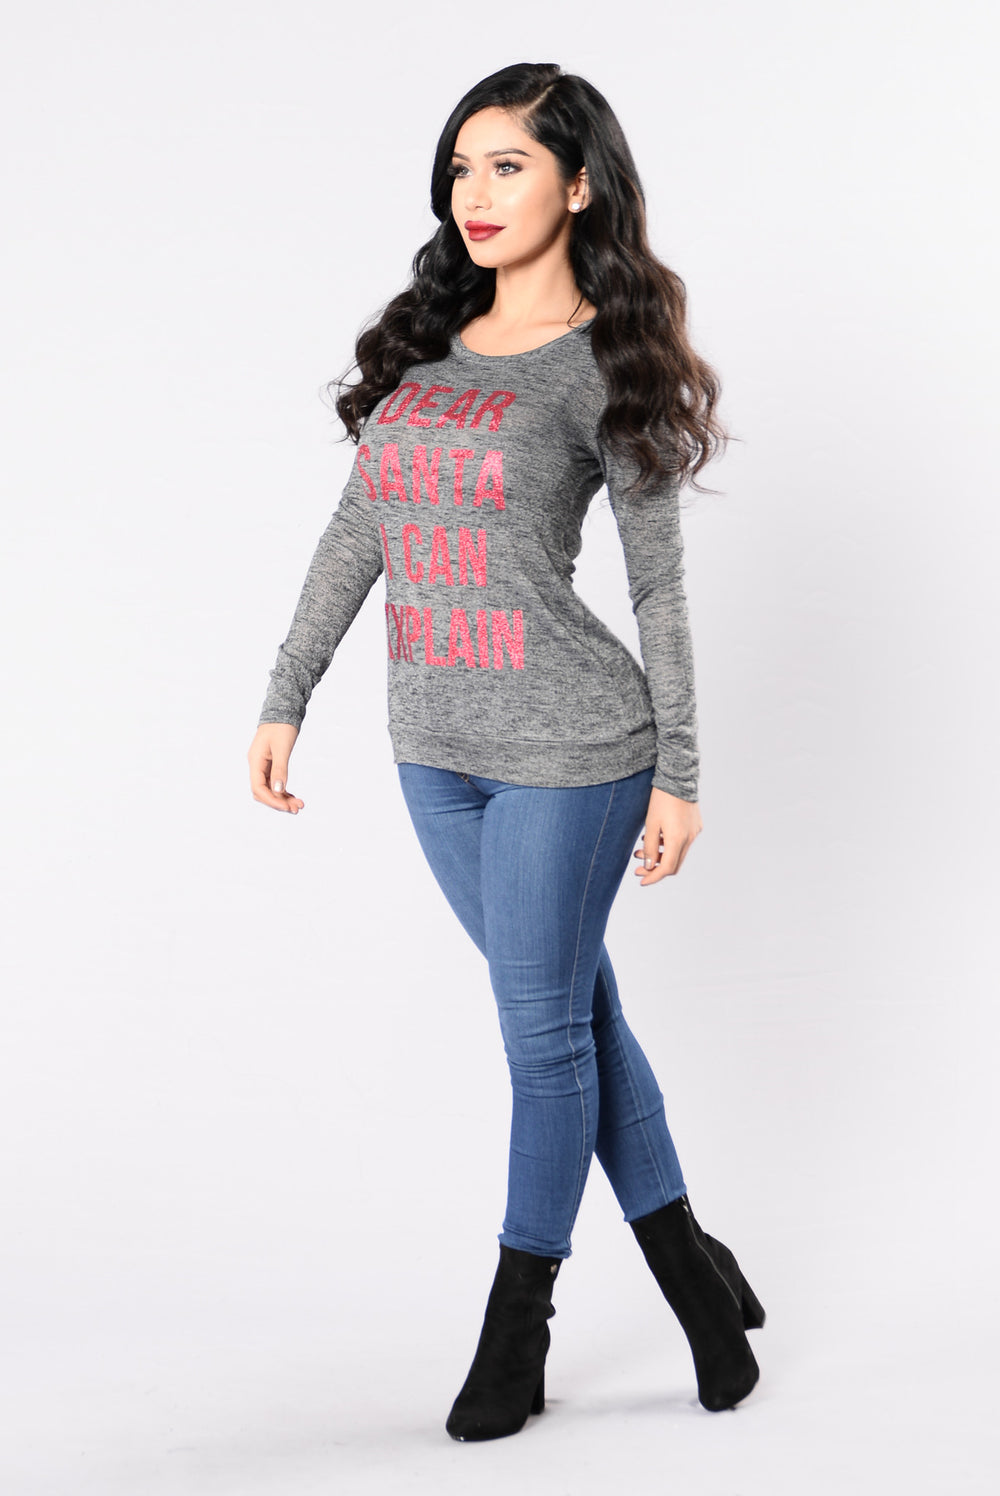 Dear Santa Holiday Sweater - Charcoal